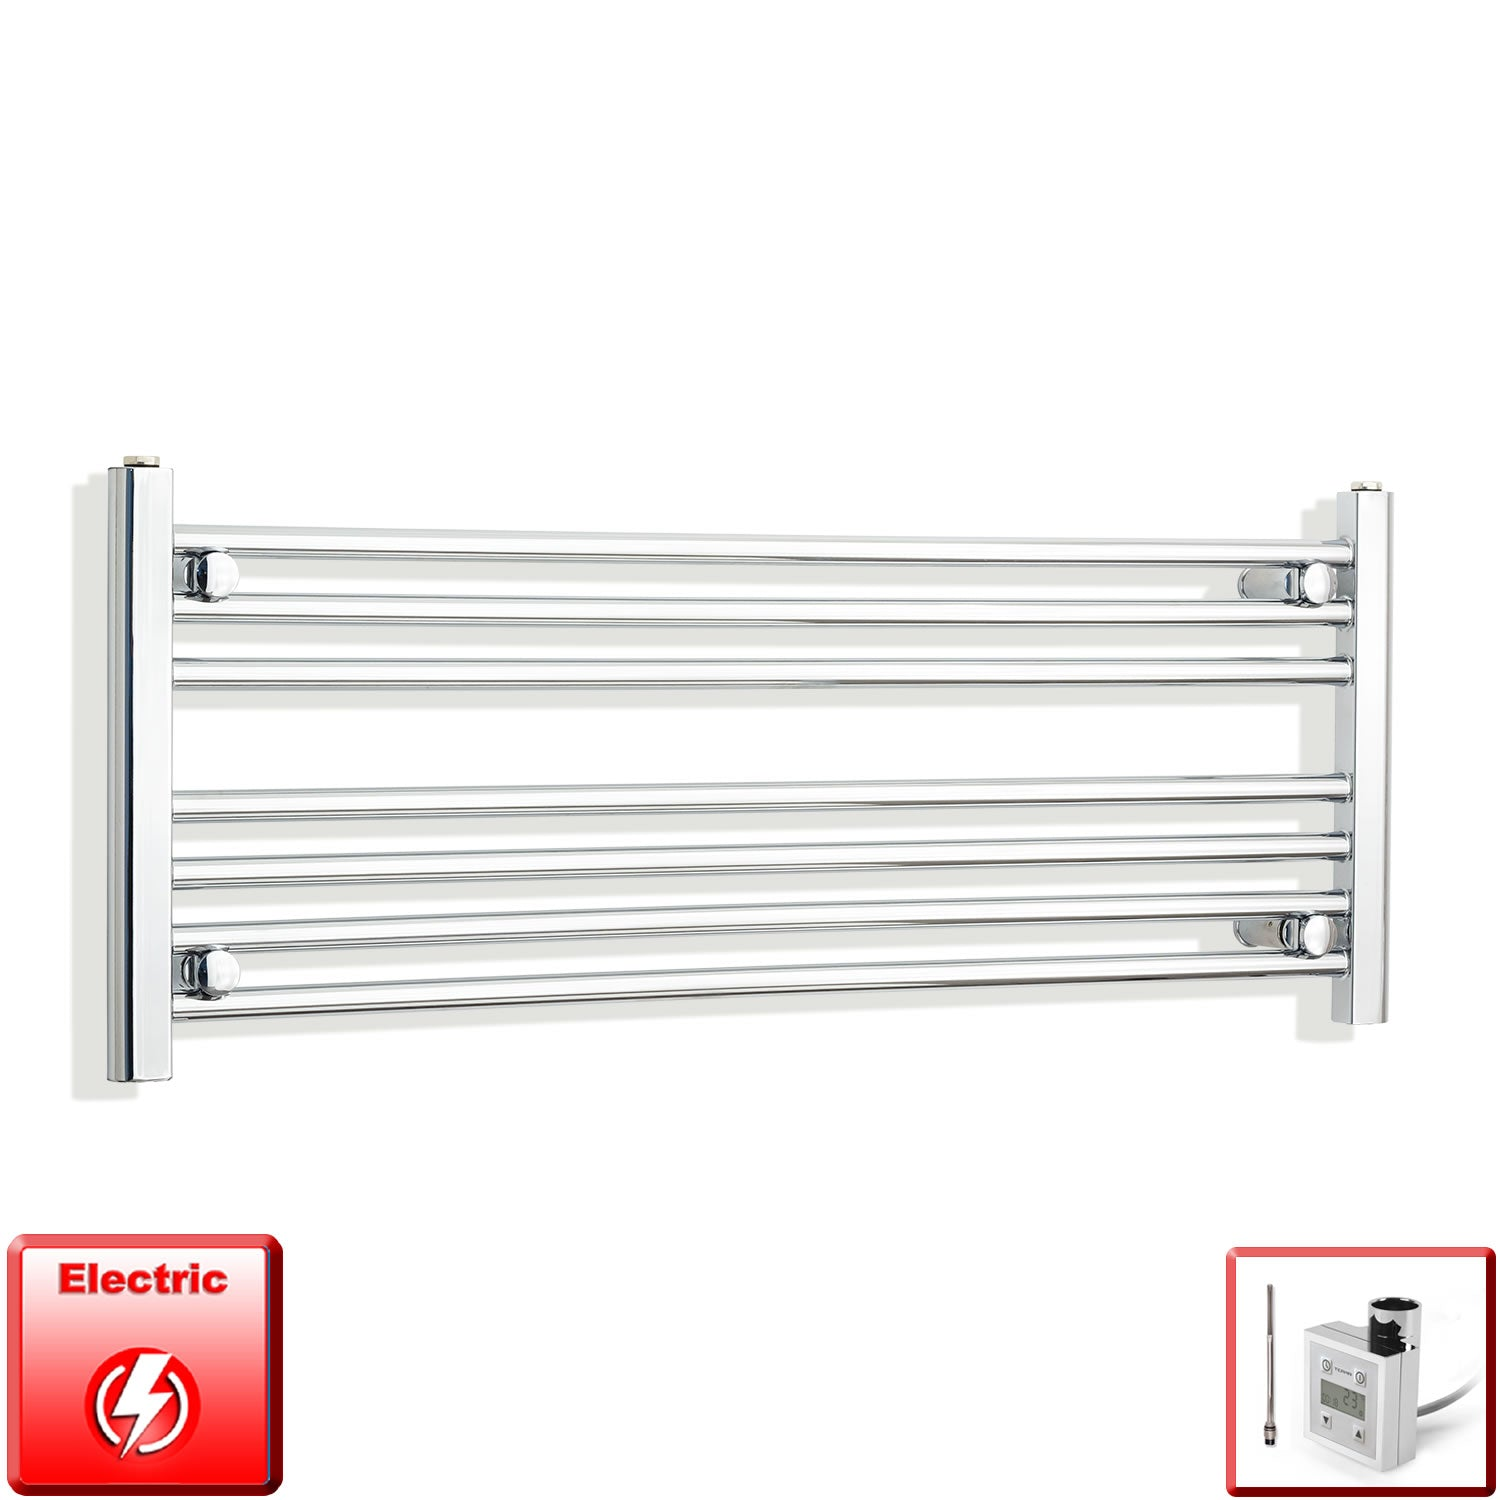 1300mm Wide 400mm High Pre-Filled Chrome Electric Towel Rail Radiator With Thermostatic KTX3 Element